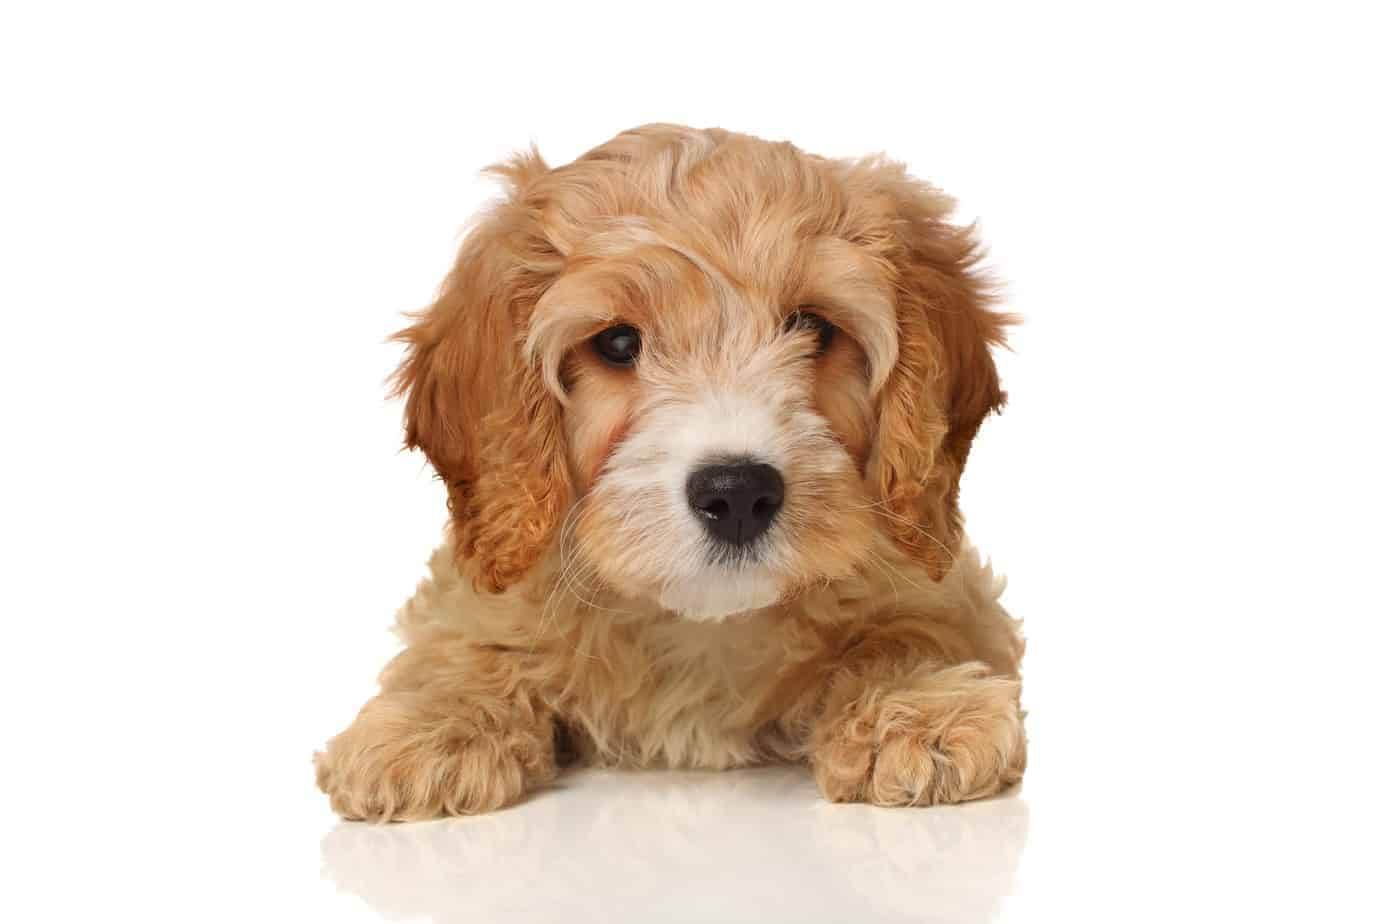 A Cavapoo or Cavoodle is a smart, friendly doodle dog with moderate exercise needs. This designer dog is a Cavalier King Charles spaniel-poodle crossbreed.